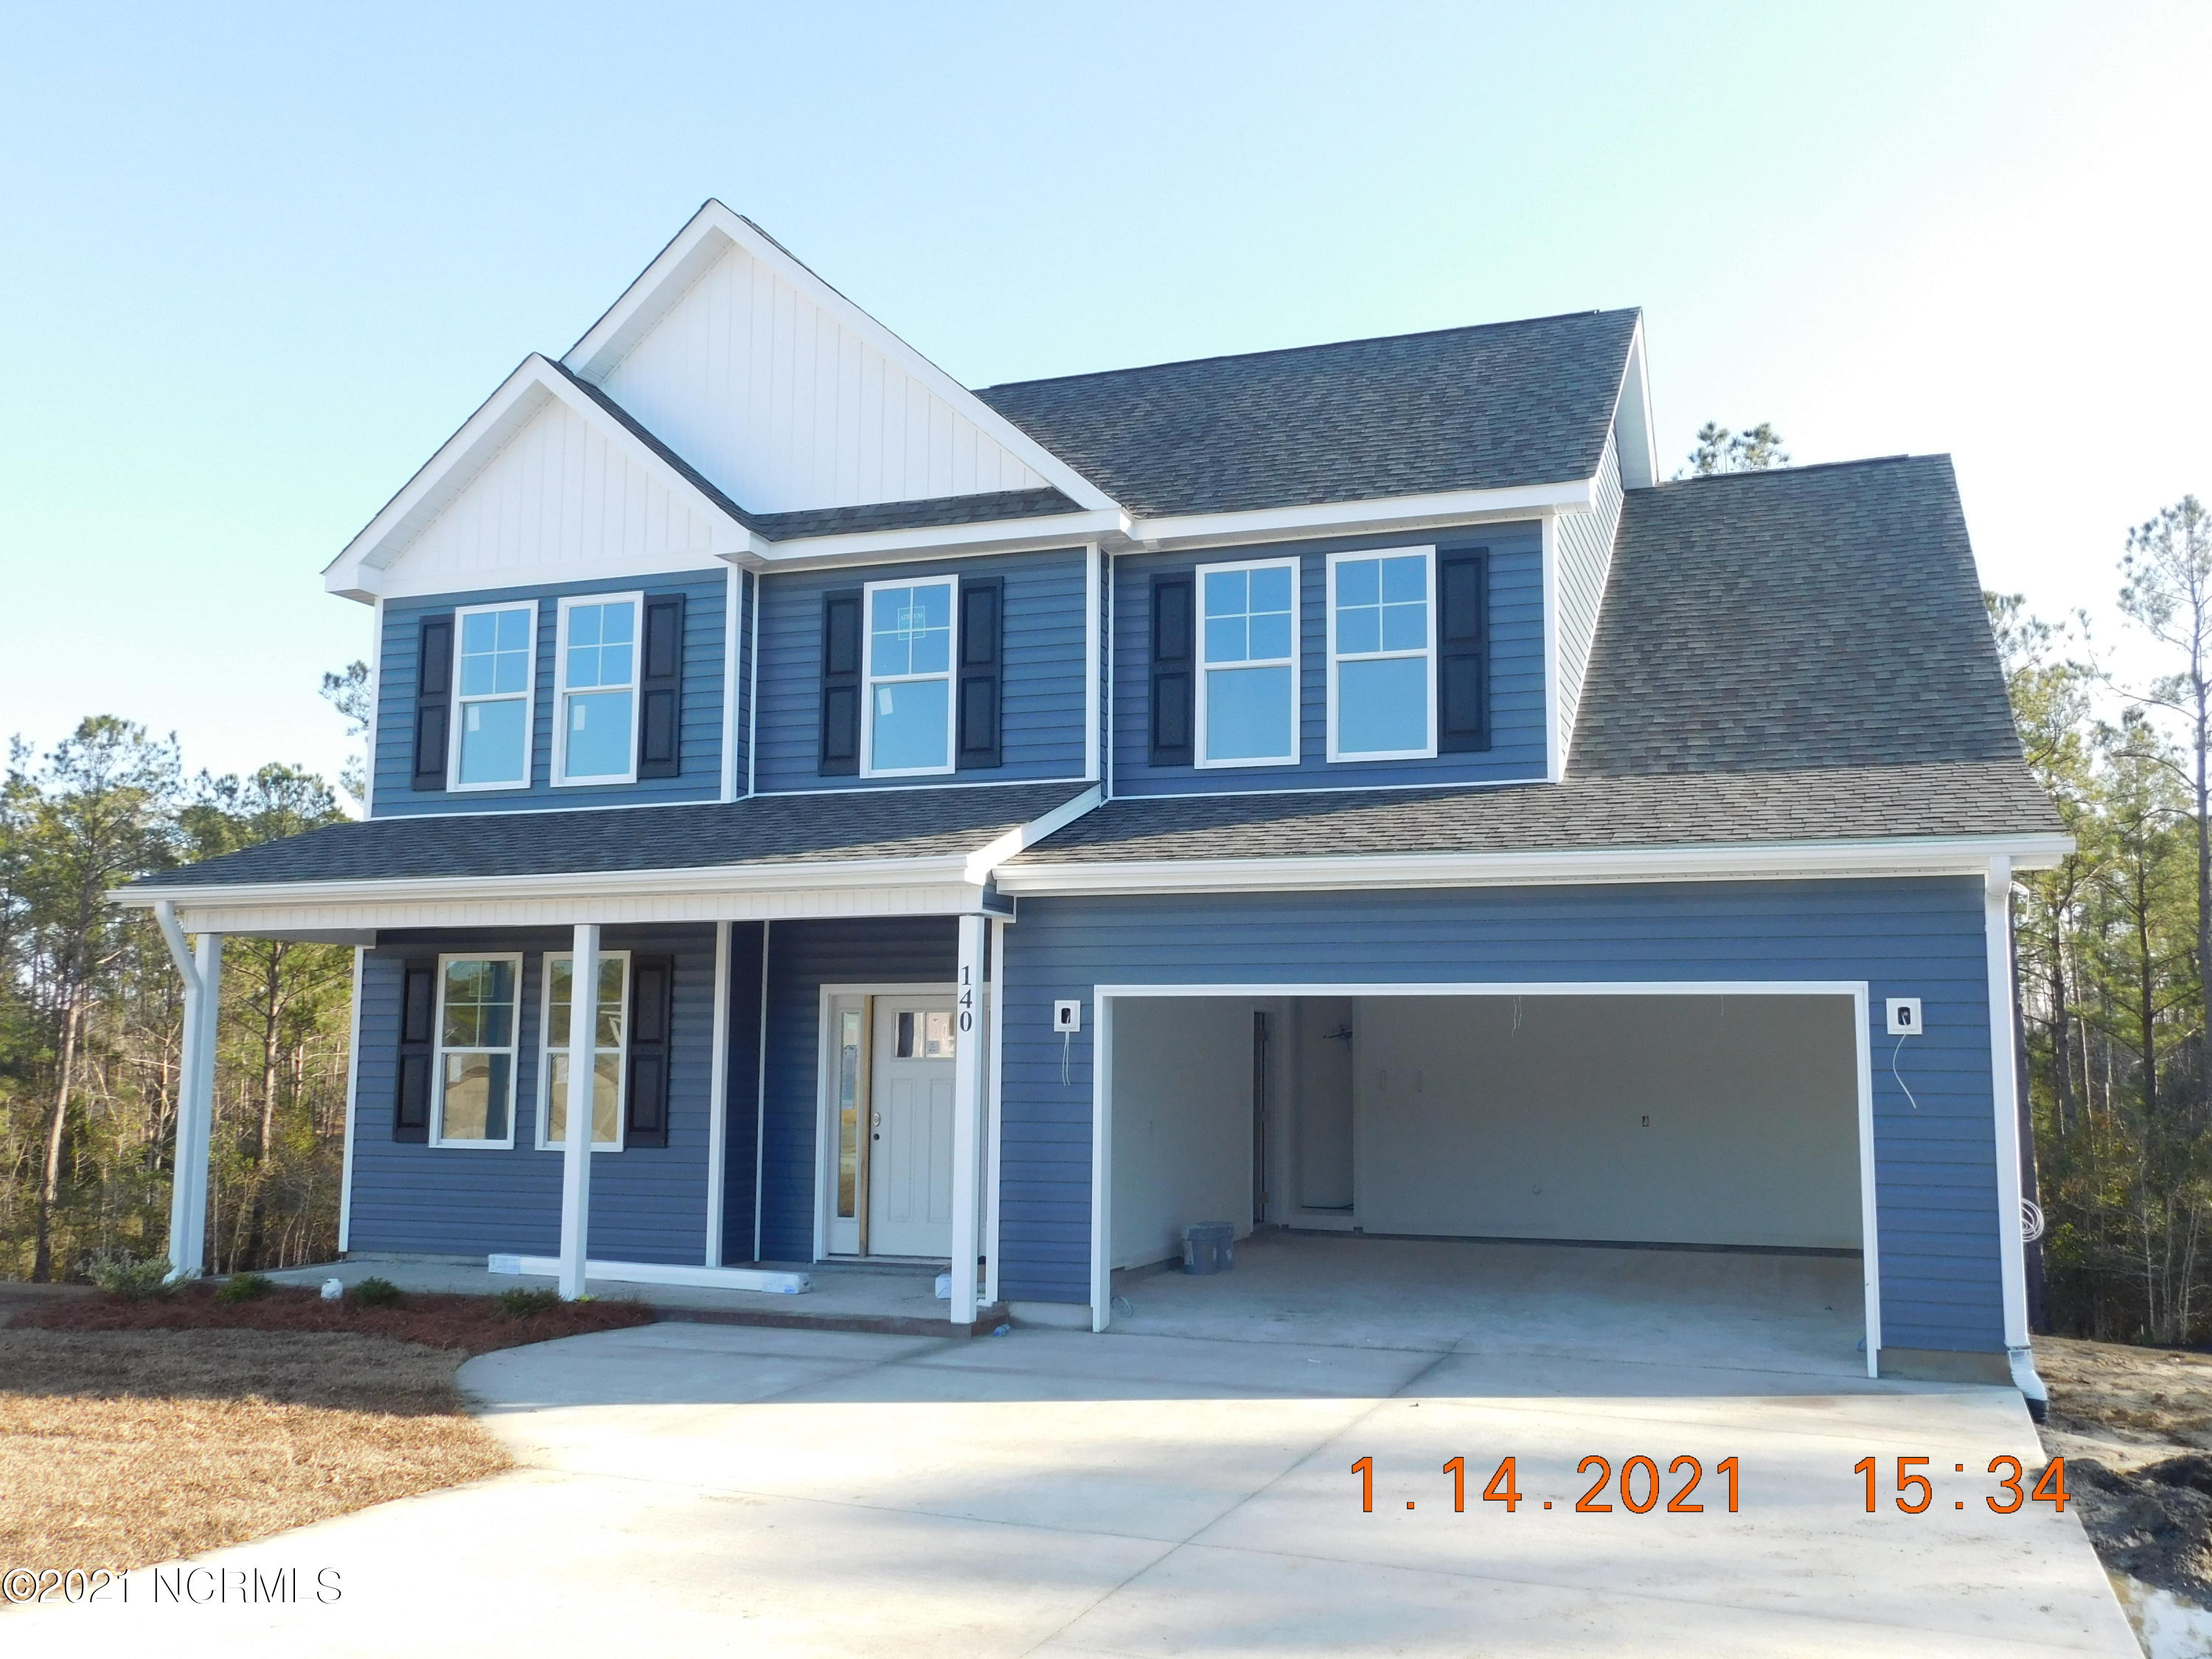 New Build in Silver Creek. 3 Bed/2.5 Bath With Additional Den/Officewith Covered front and rear porches.Granite in Kitchen, LVP flooring throughout main Floor. Carpet upstairs. Upgrade Cabinets and 9ft. Smooth Ceilings. Seller closing assistance with preferred  closing attorney Mike Lincoln